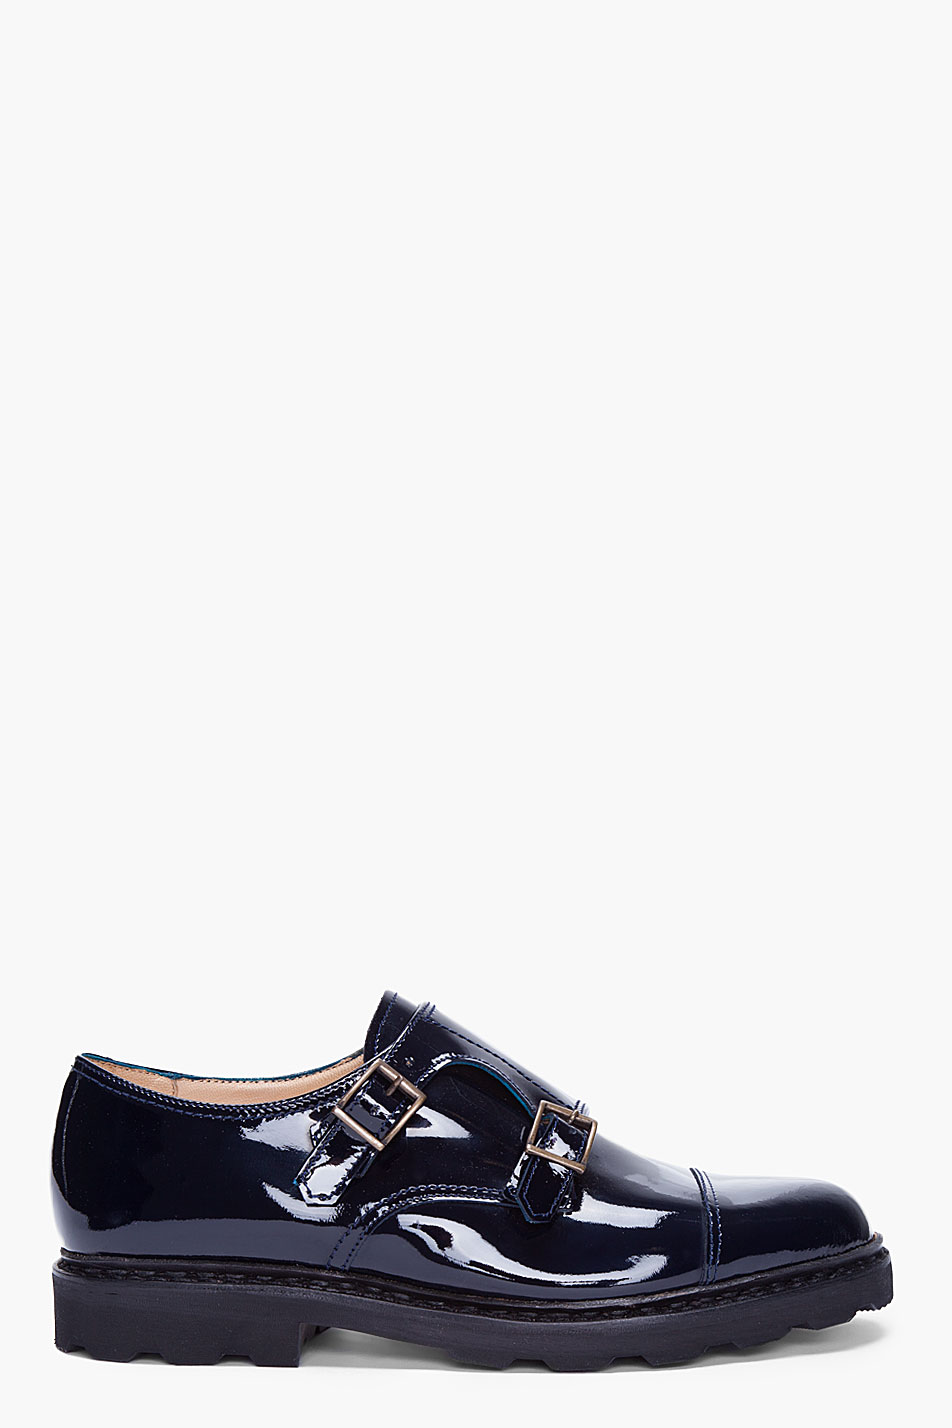 mugler navy patent leather monk shoes in blue for